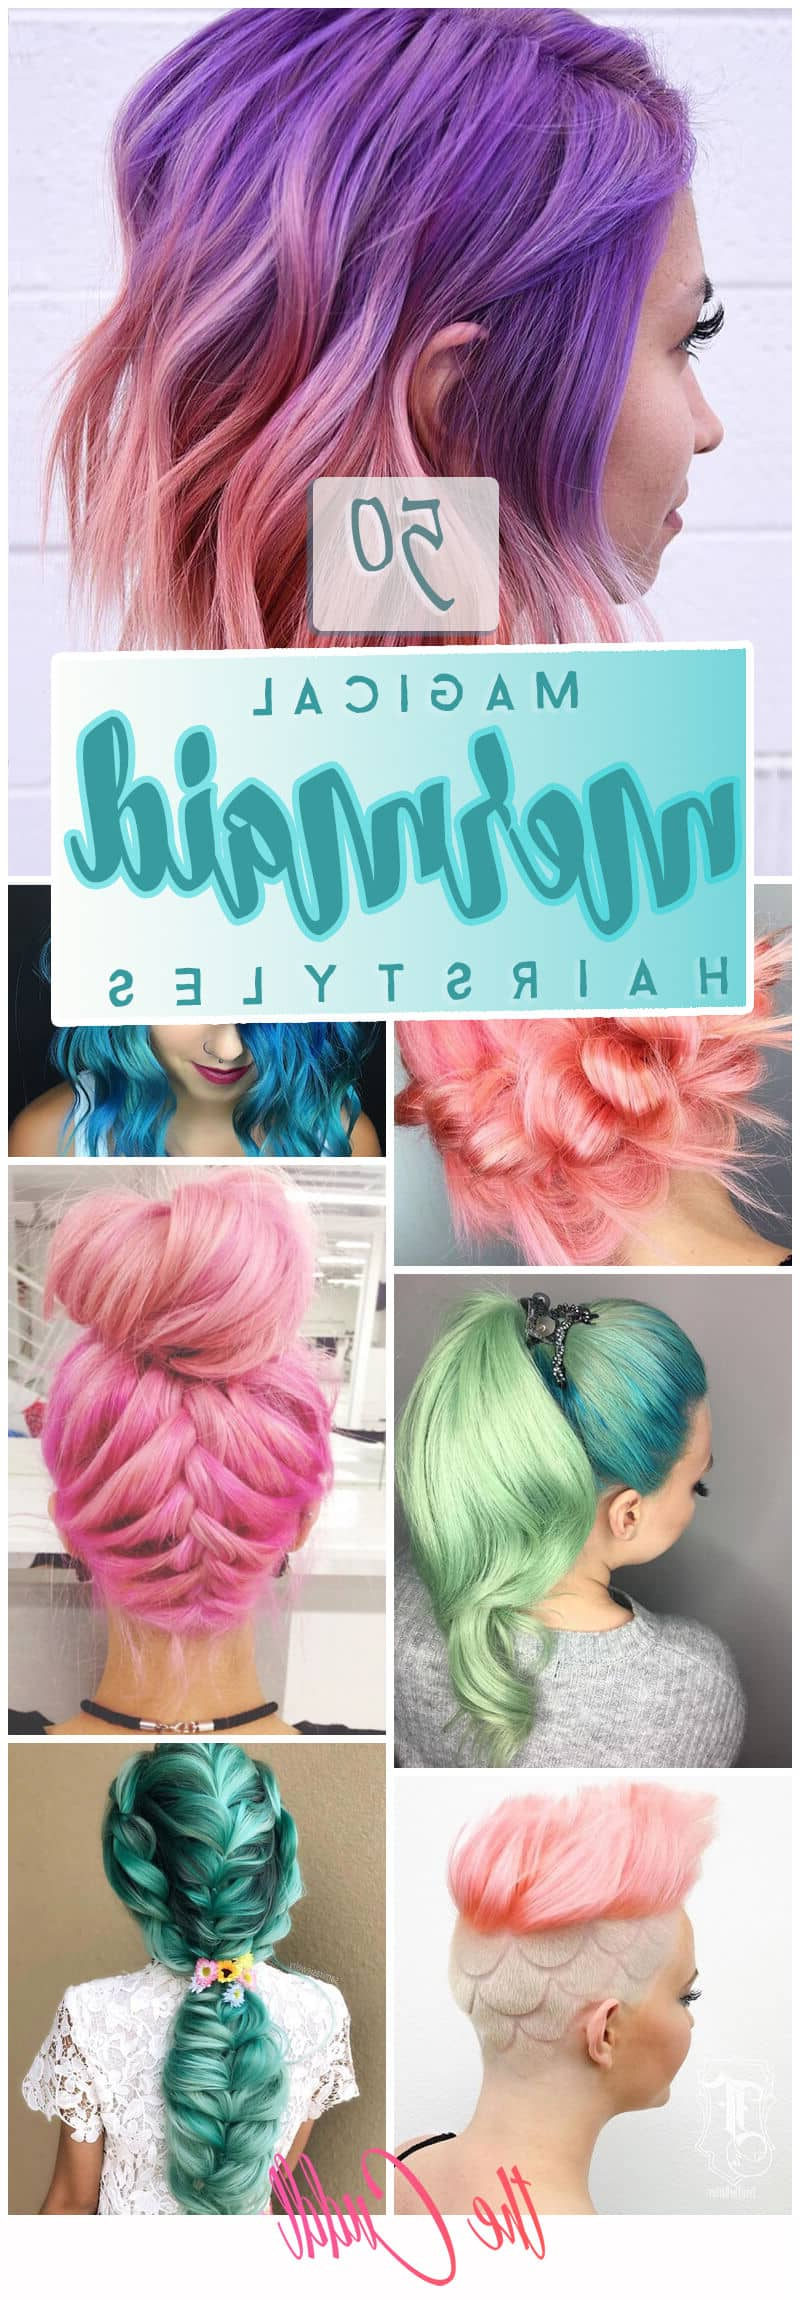 50 Magical Ways To Style Mermaid Hair For Every Hair Type Intended For Sunset Inspired Pixie Bob Hairstyles With Nape Undercut (View 17 of 20)